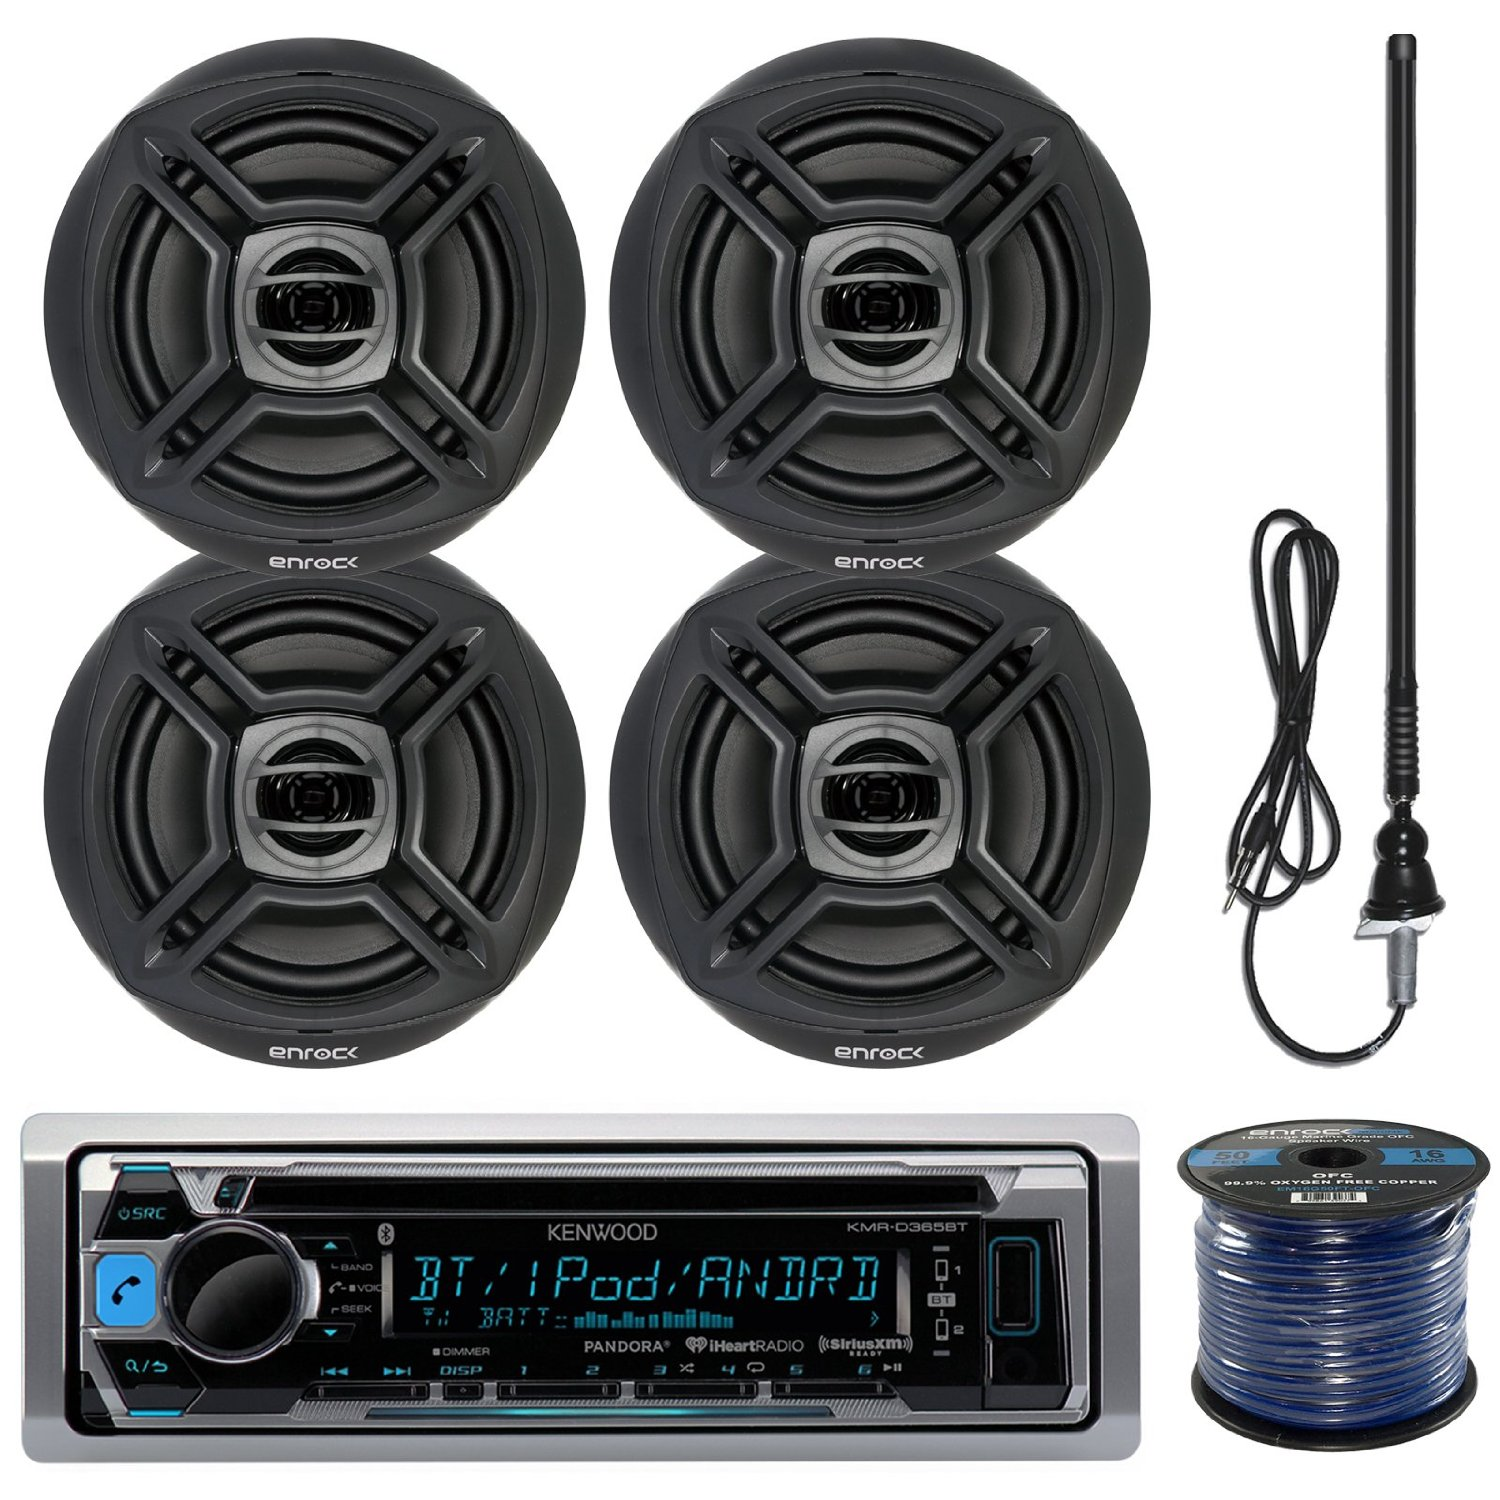 "Kenwood KMR-D365BT Marine Boat Outdoor Bluetooth CD MP3 USB/AUX iPod iPhone Stereo Receiver 4X 6.5"" Inch Dual Cone Enrock Marine Waterproof Speakers 50 Ft Marine Speaker Wire + Antenna (Black)"